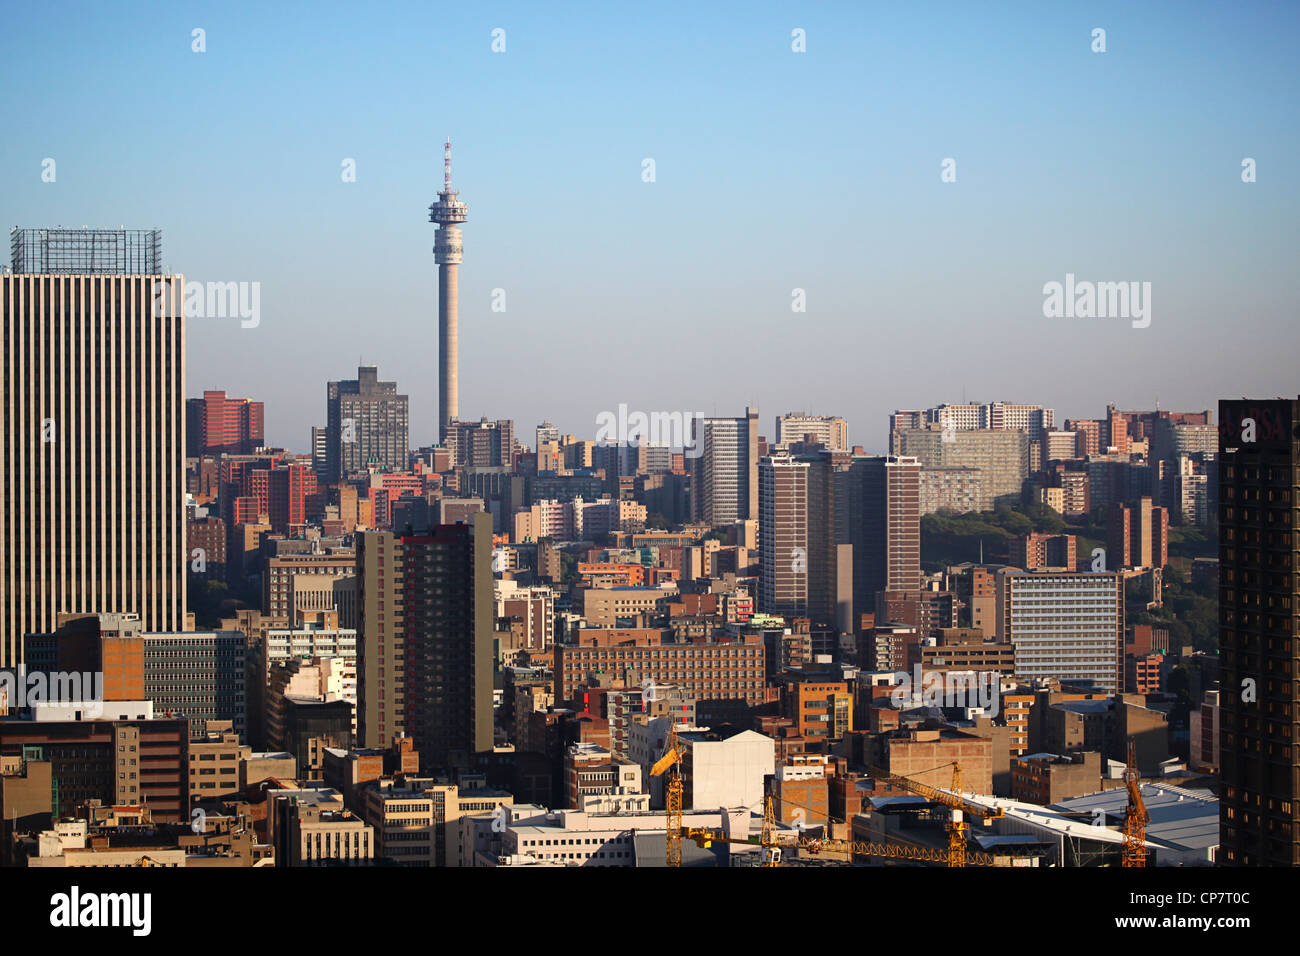 Johannesburg skyline and 'Hillbrow Tower' - Stock Image